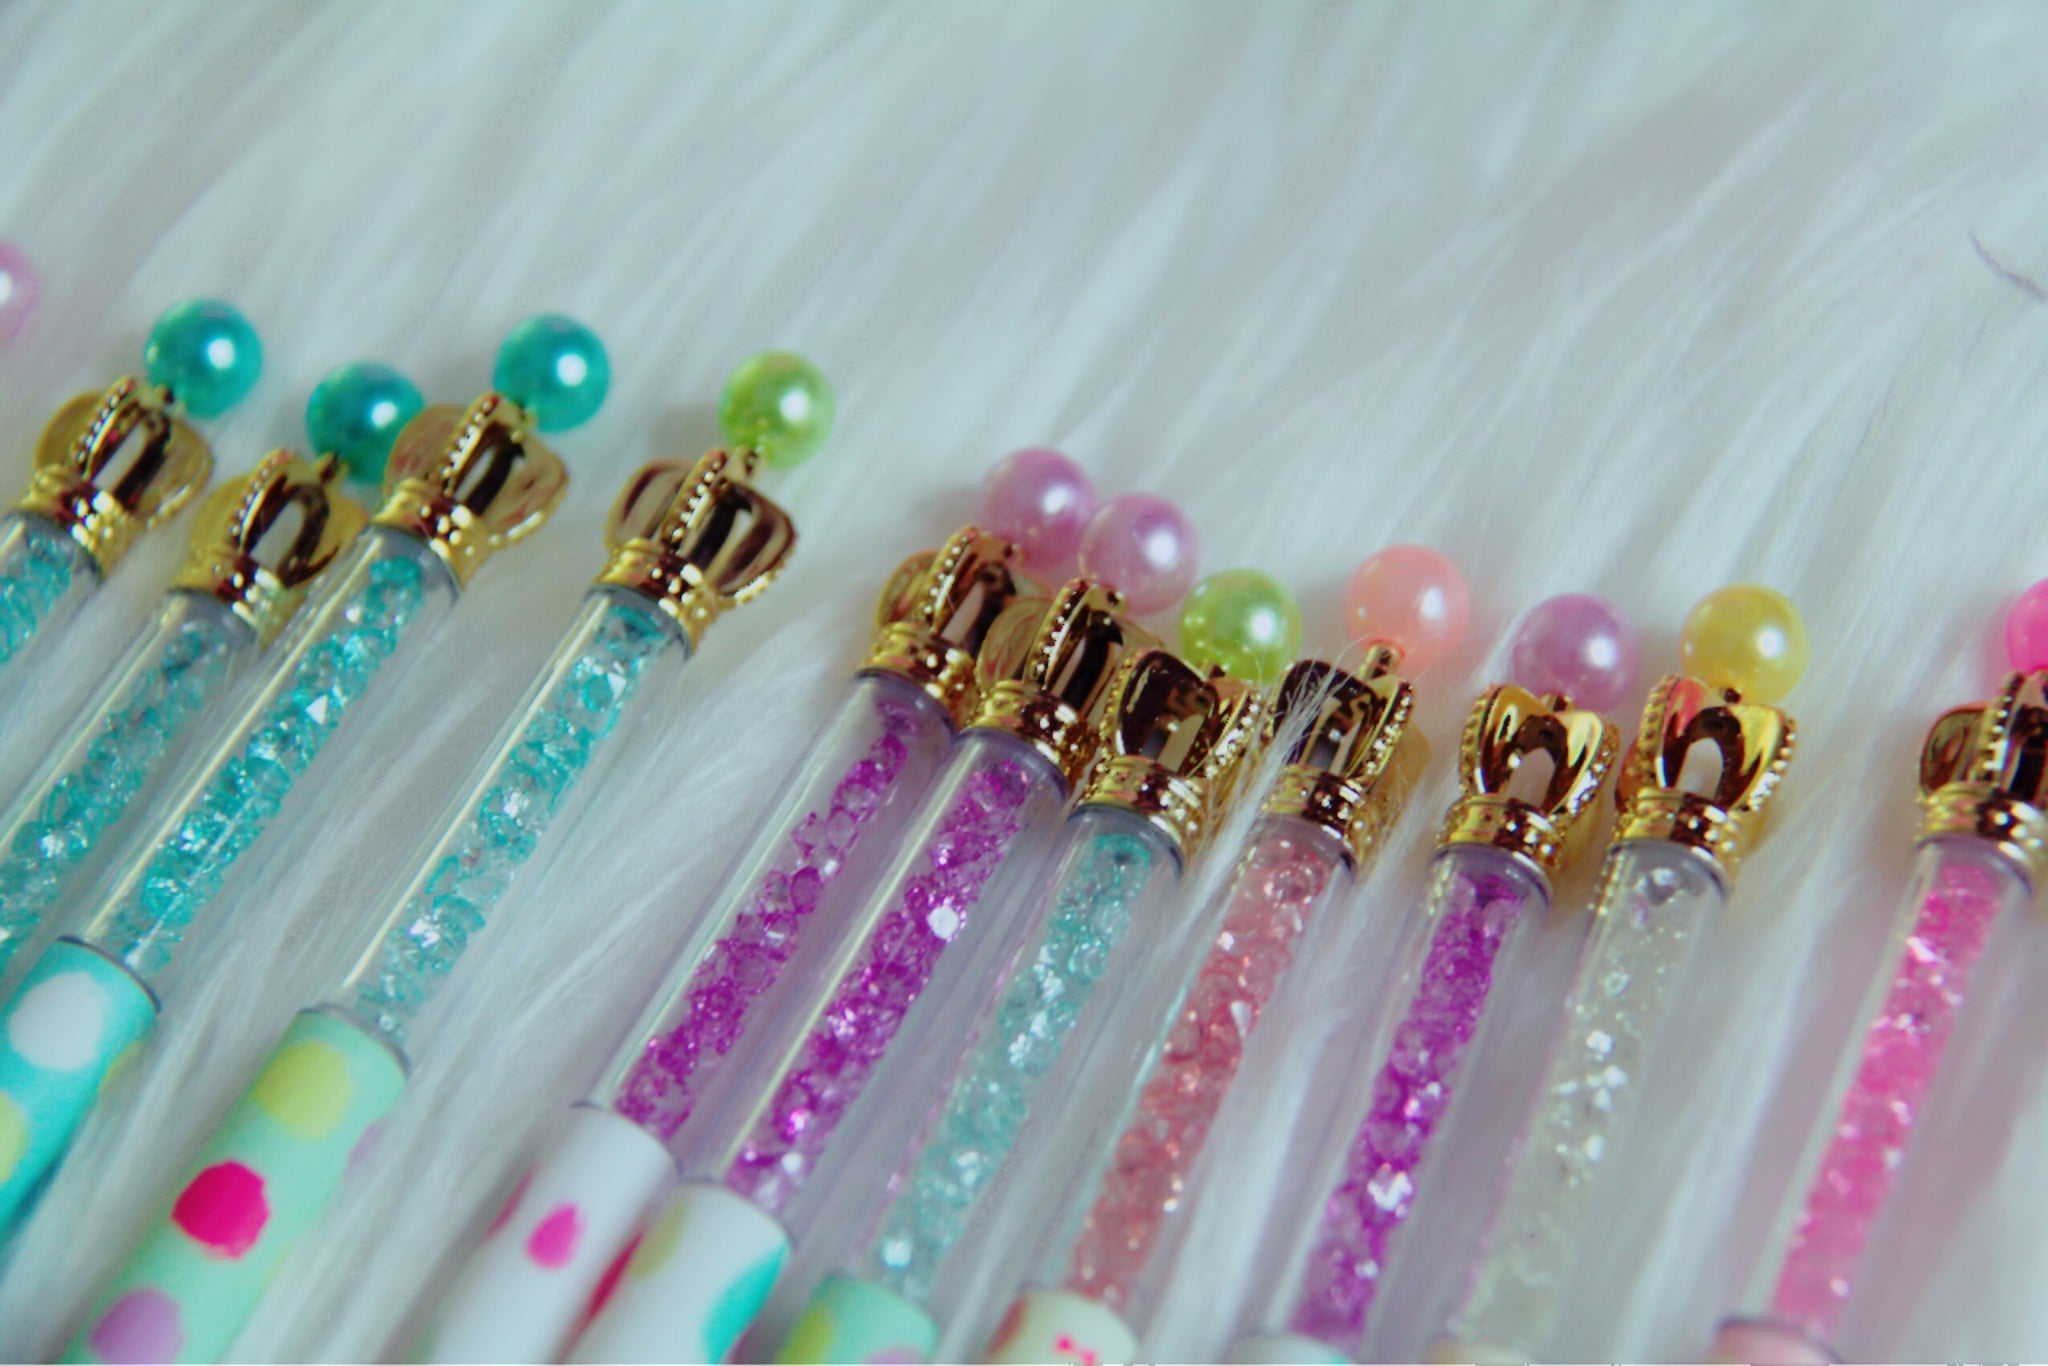 Princess crown pens